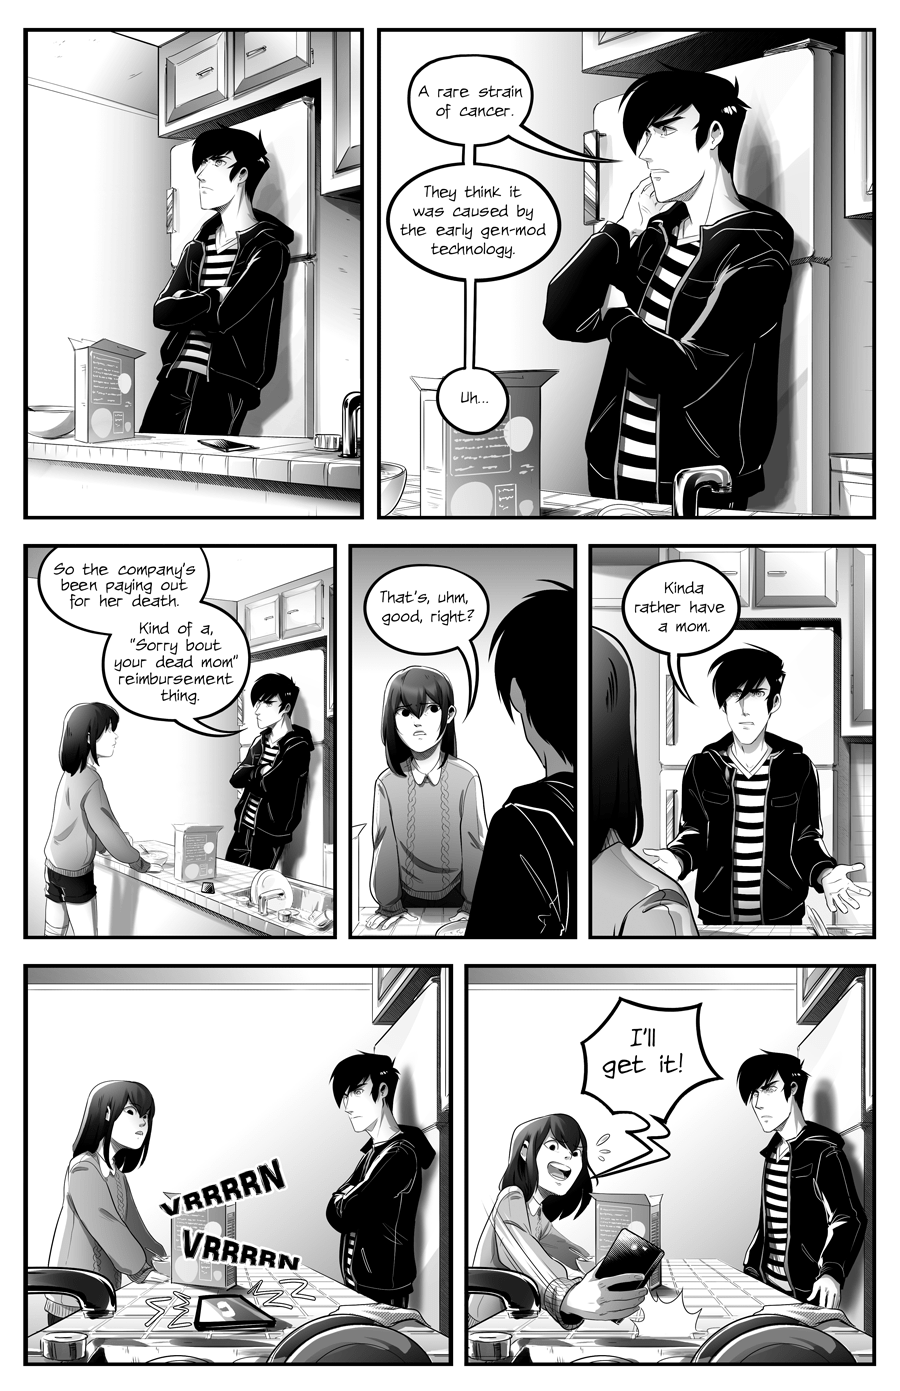 Ch 5 Page 23